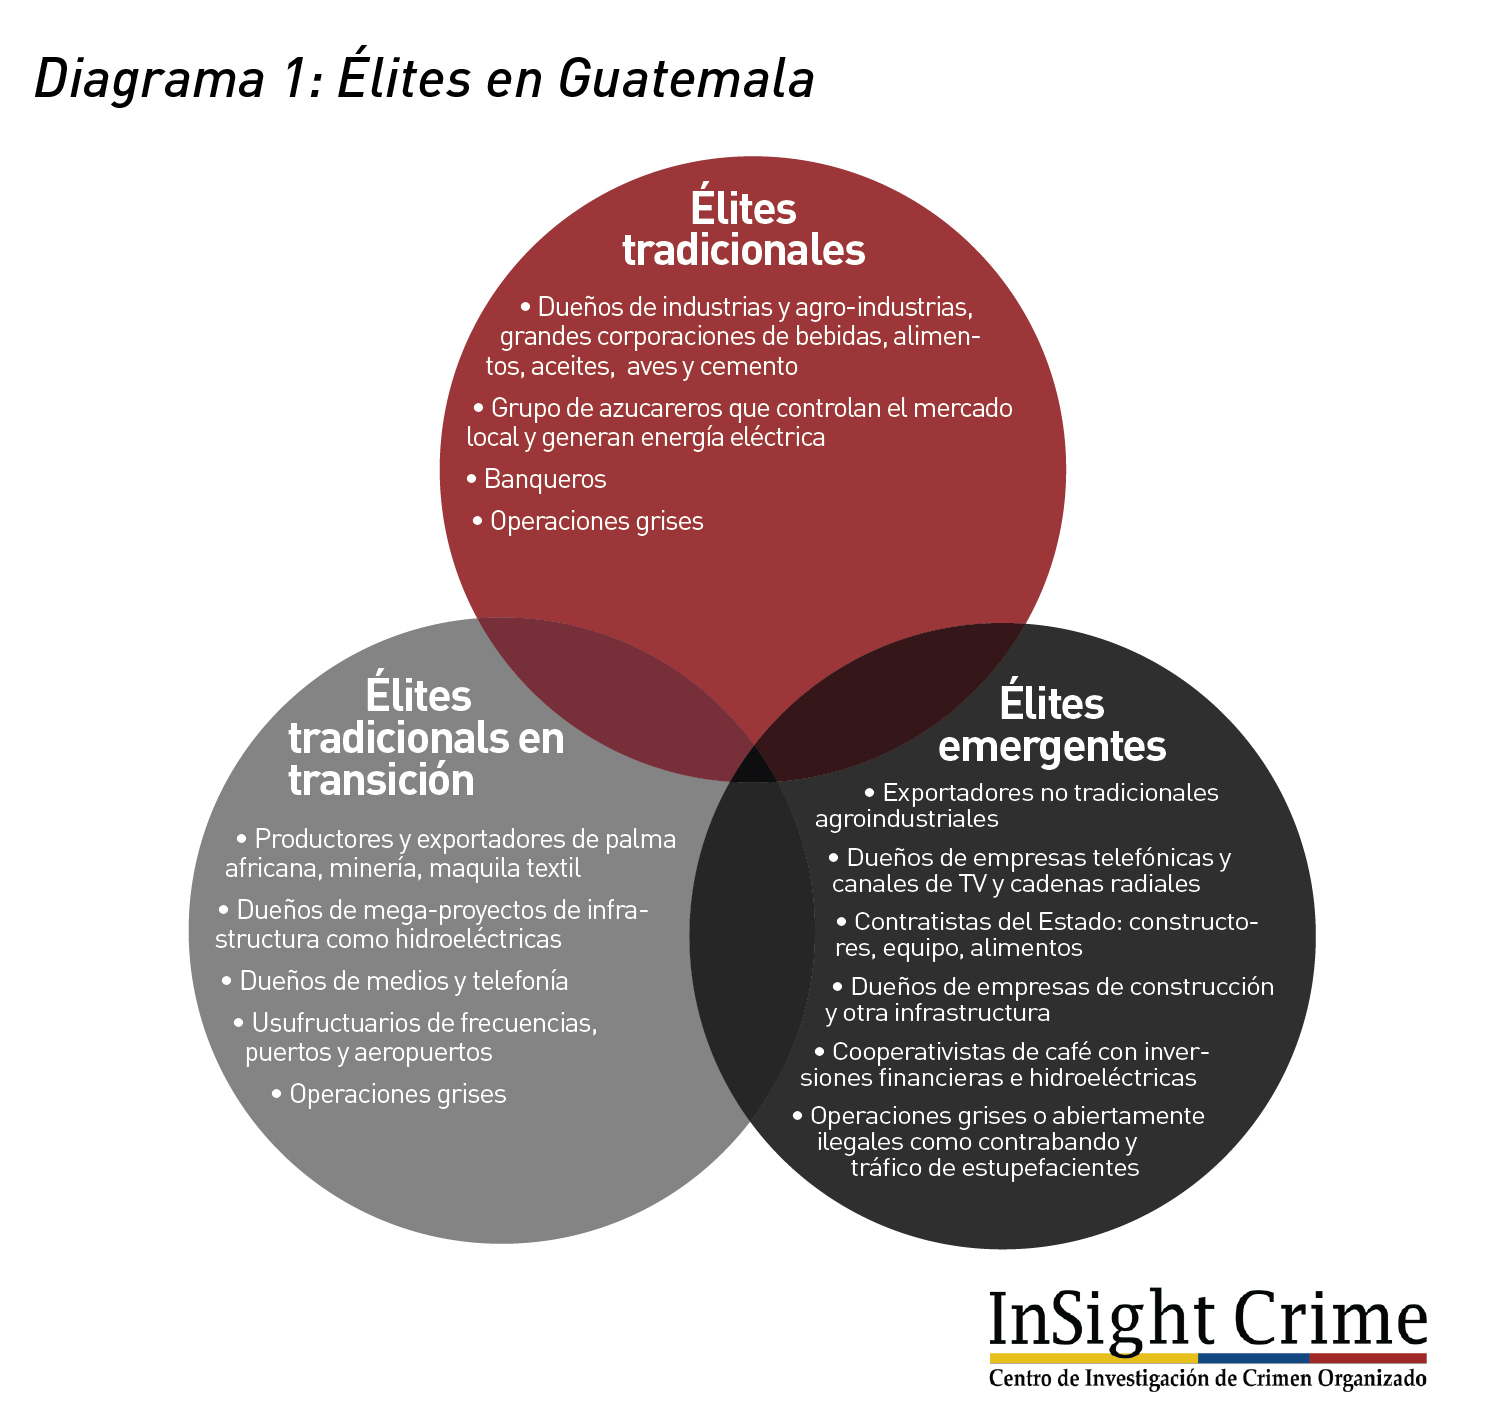 Diagrama1 ElitesEnGuatemala